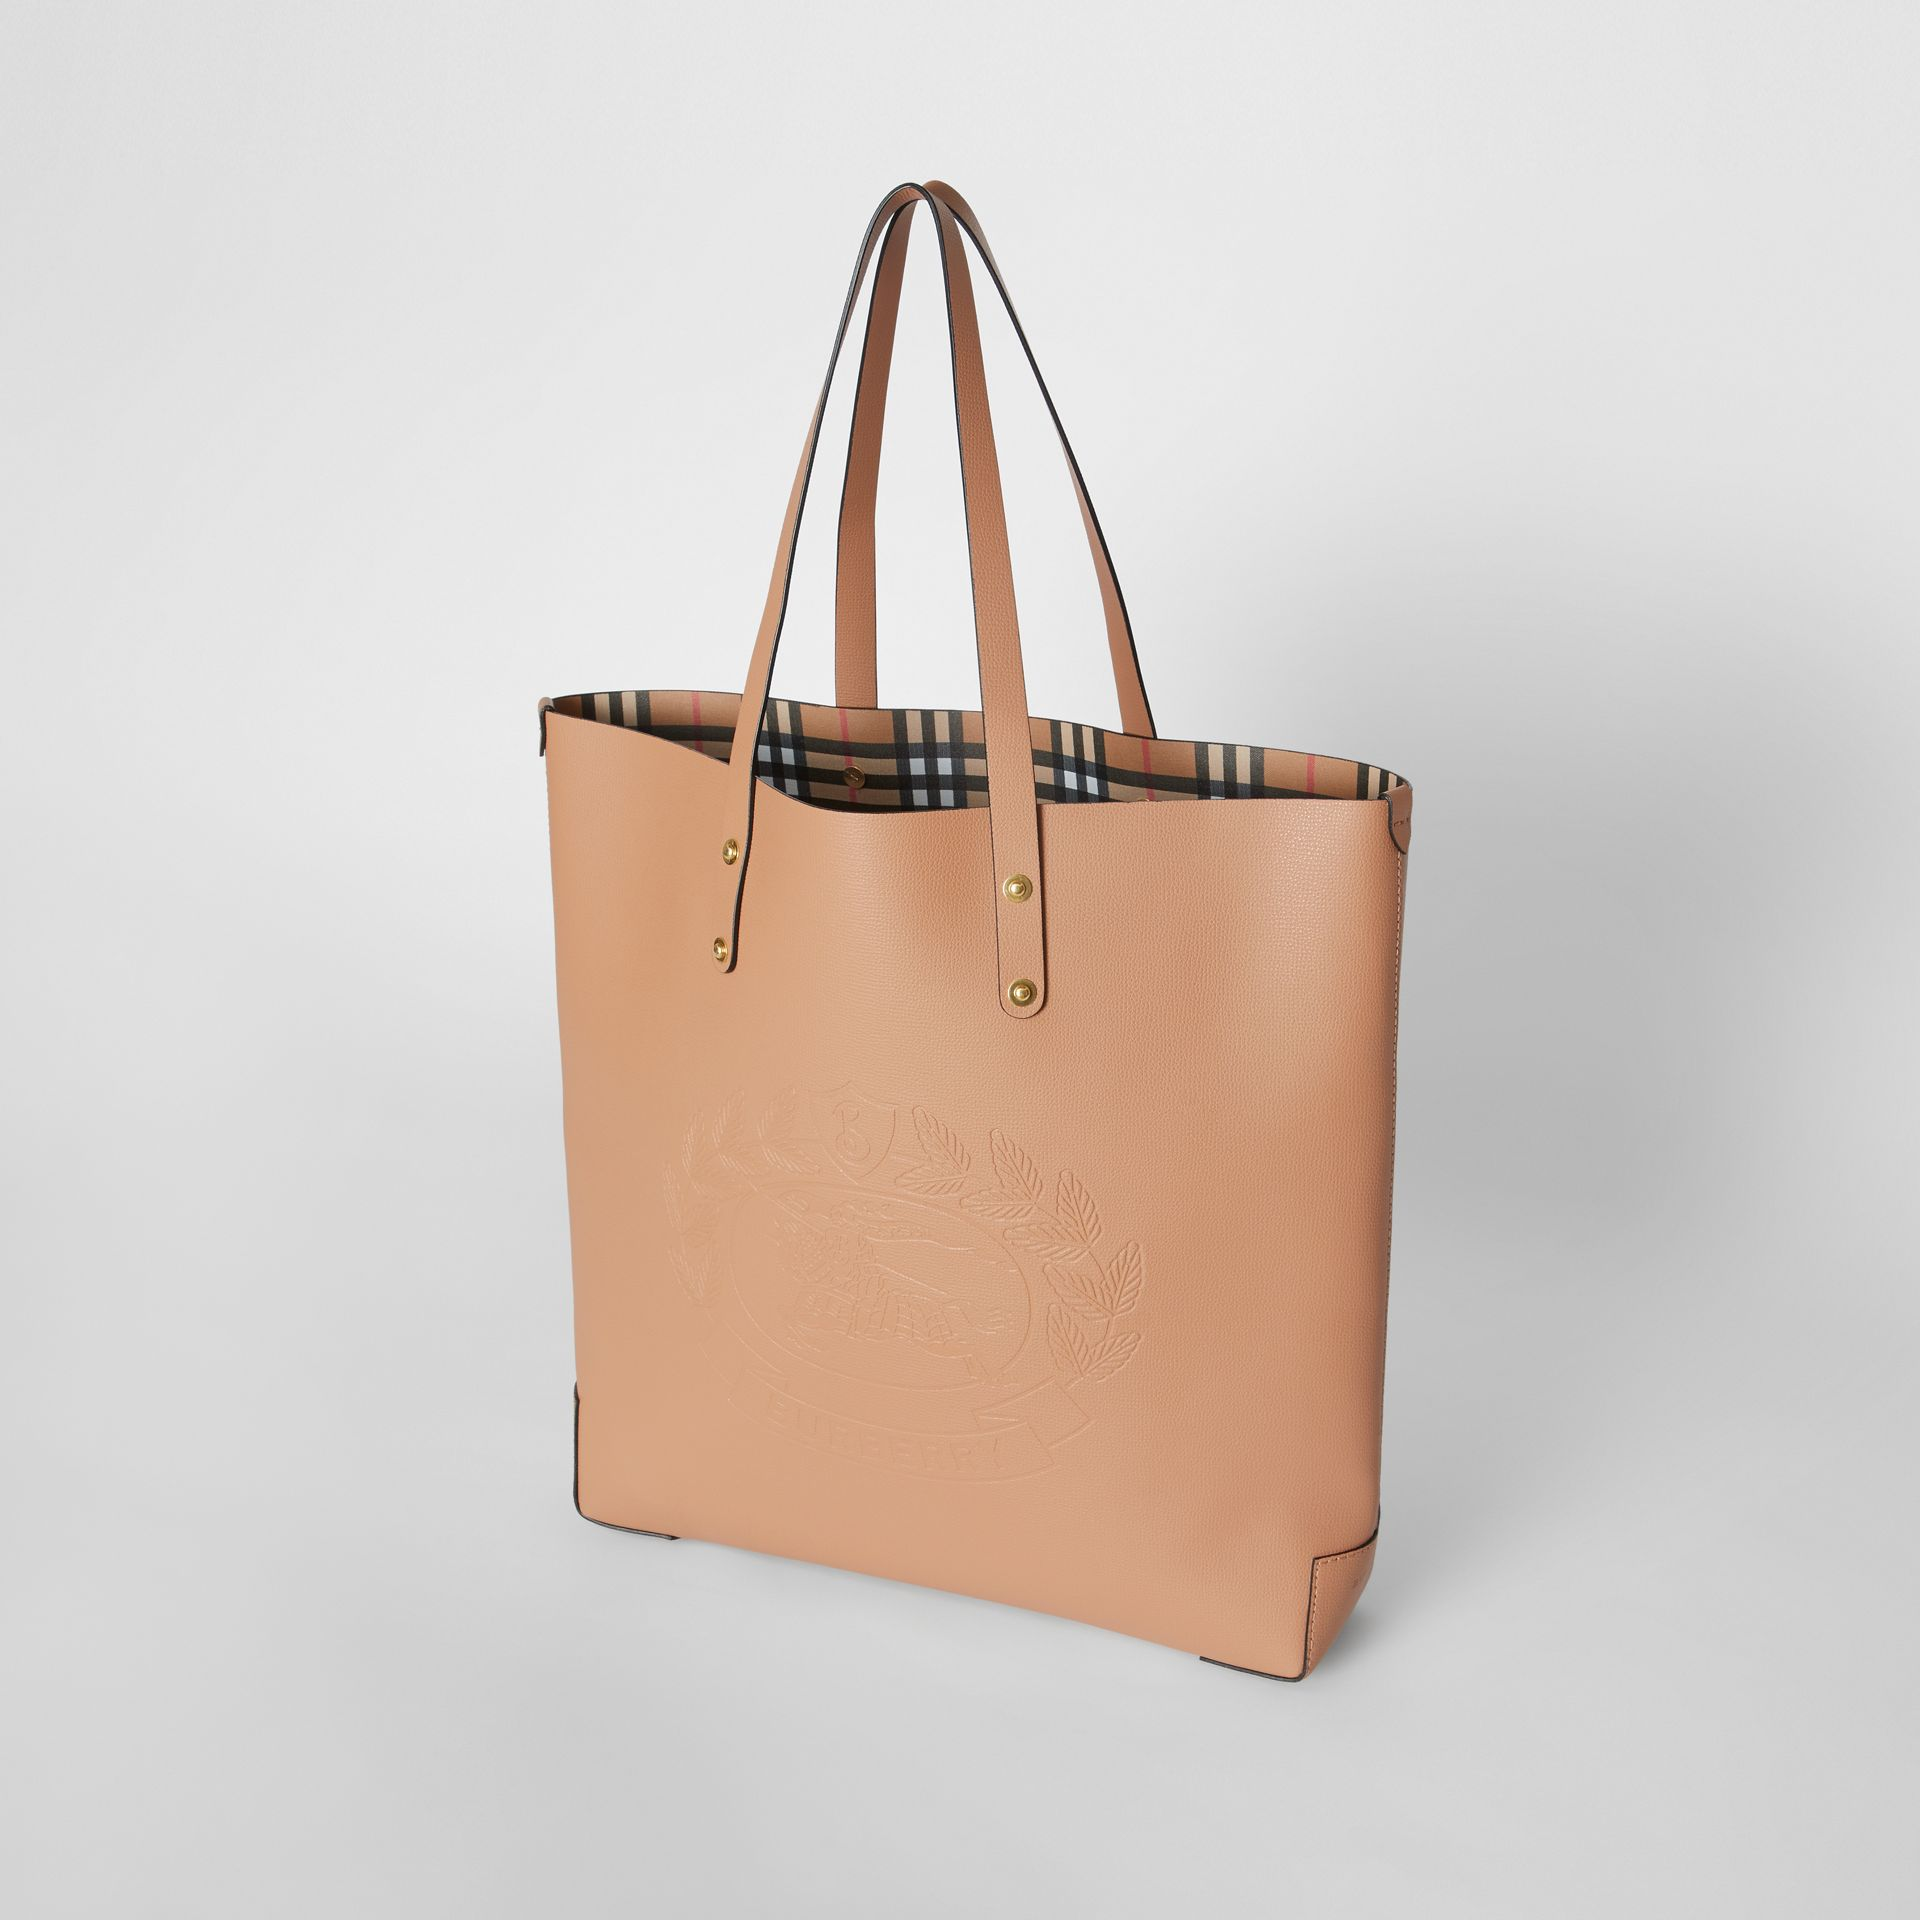 Embossed Crest Leather Tote in Light Camel - Women | Burberry Canada - gallery image 2